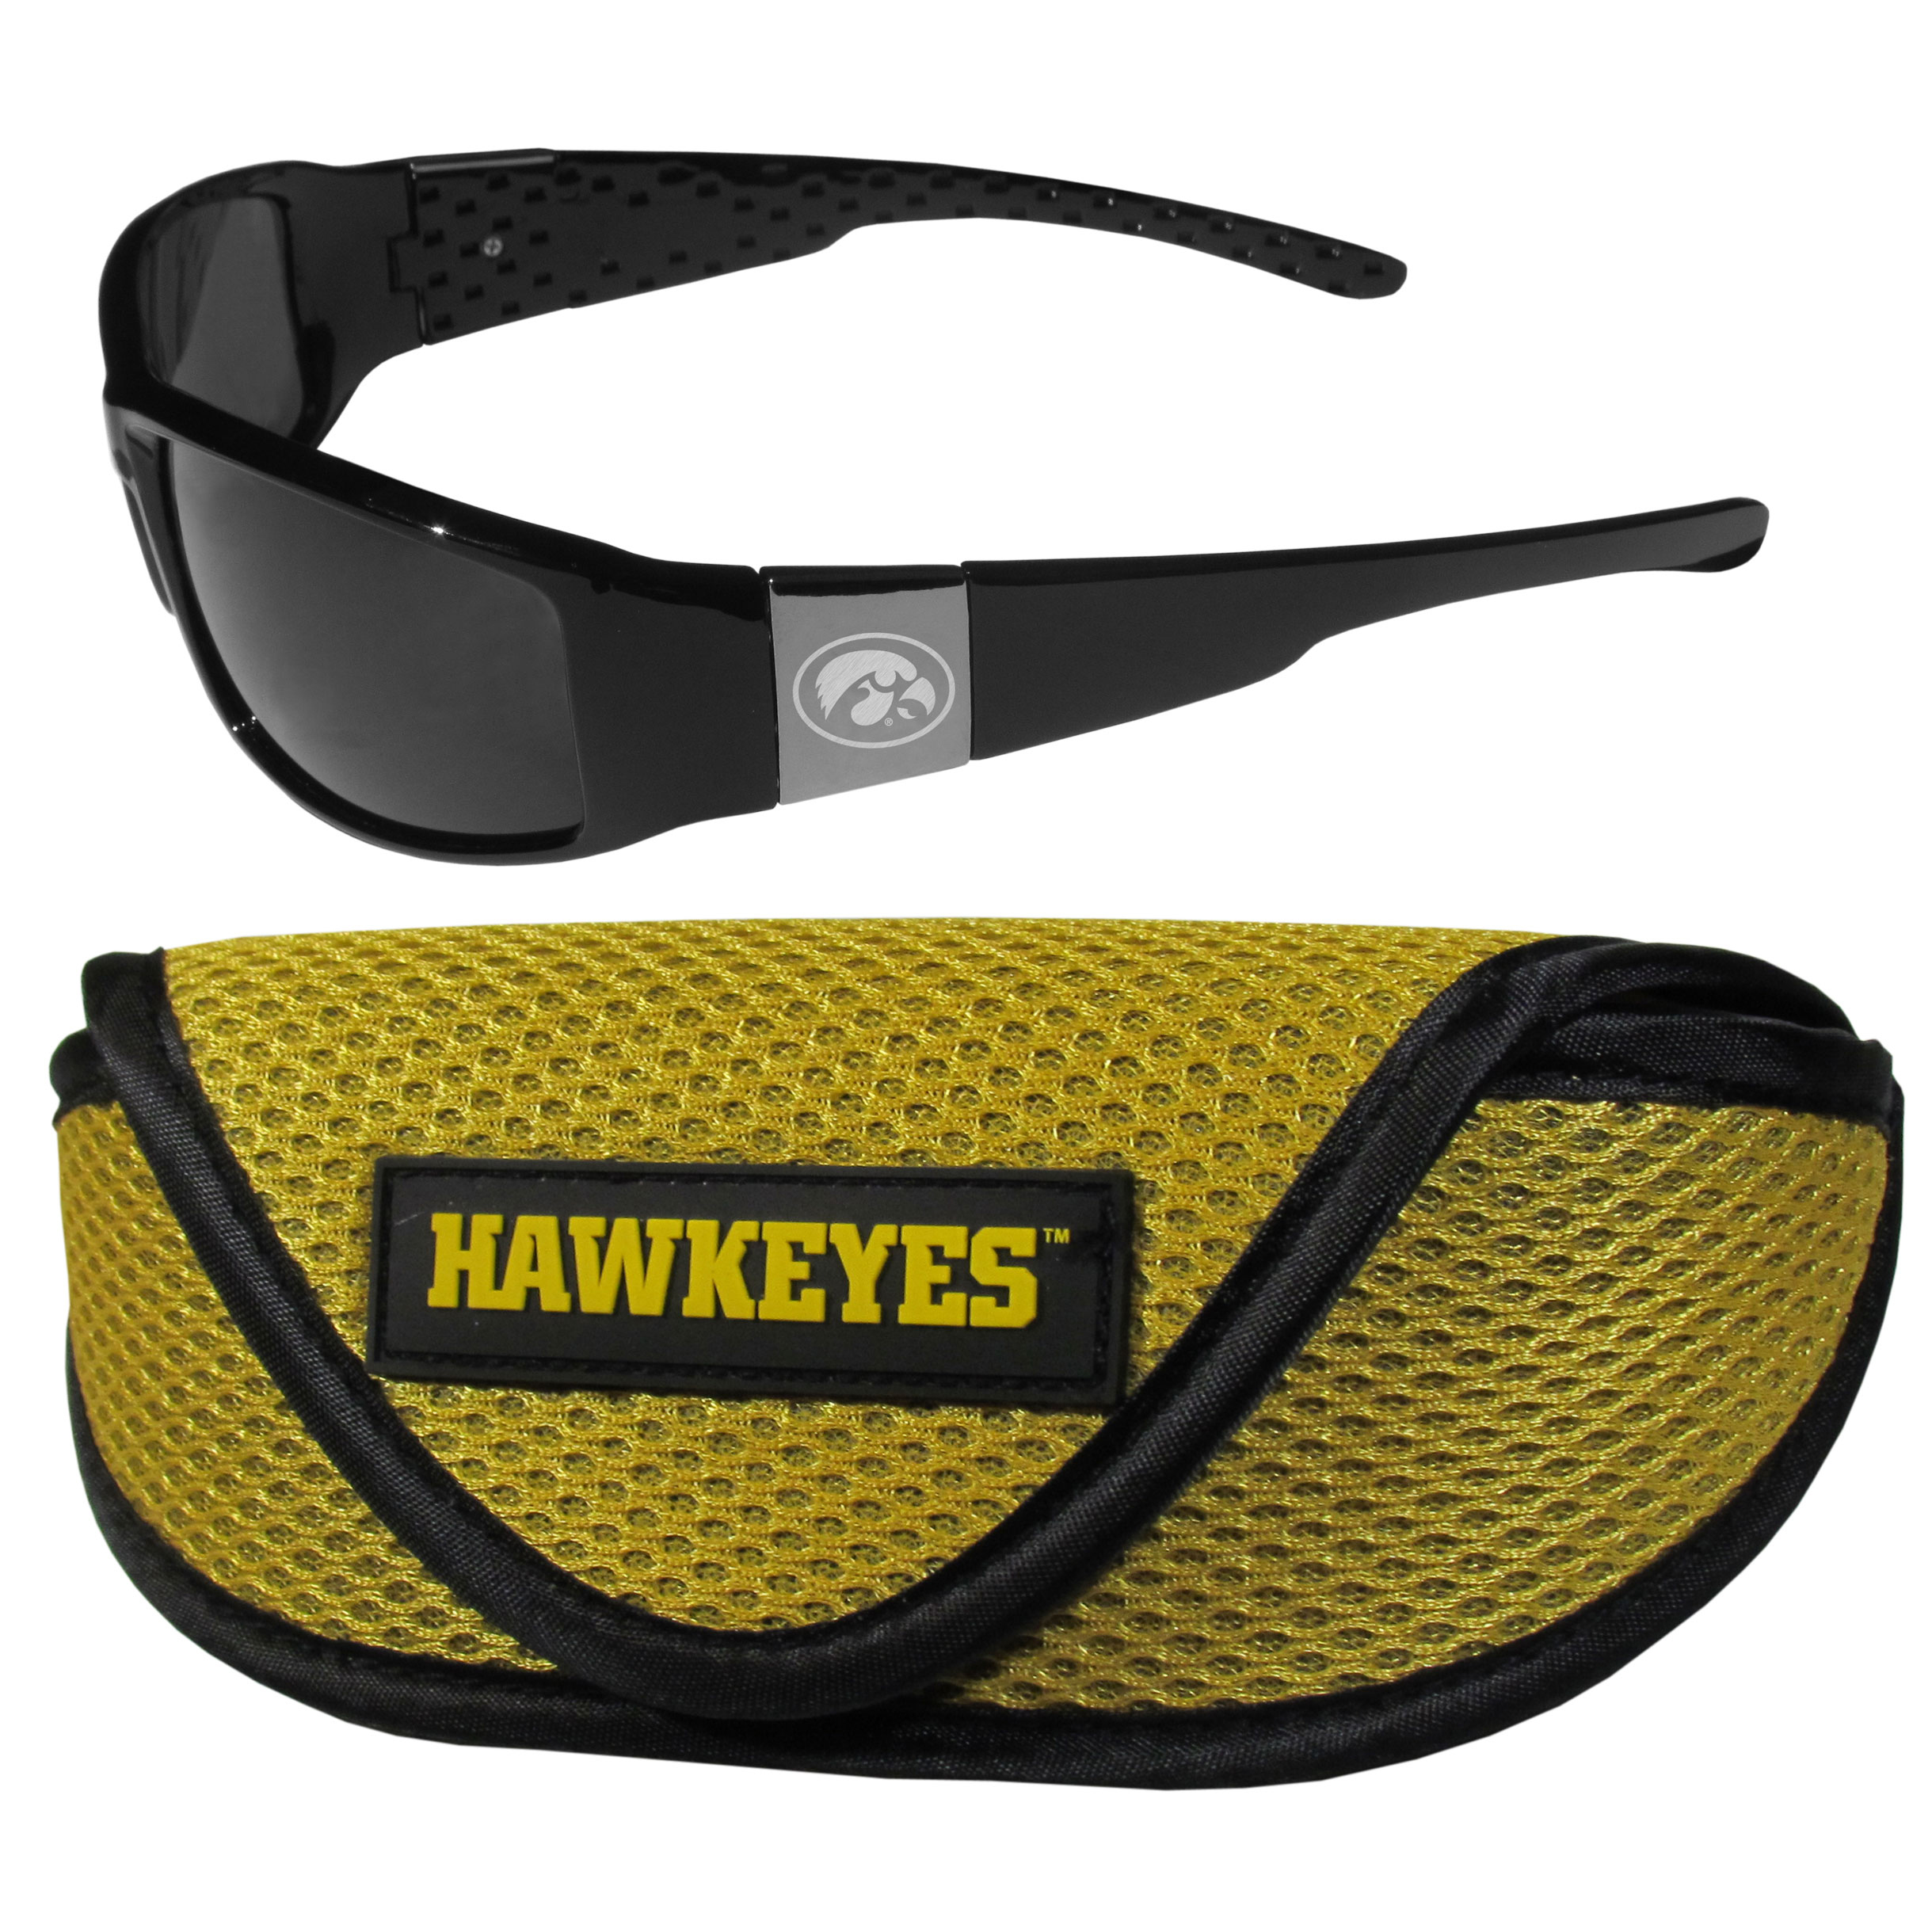 Iowa Hawkeyes Chrome Wrap Sunglasses and Sport Carrying Case - These designer inspired frames have a sleek look in all black with high-polish chrome Iowa Hawkeyes shields on each arm with an etched logo. The shades are perfect any outdoor activity like; golfing, driving, hiking, fishing or cheering on the team at a tailgating event or an at home game day BBQ with a lens rating of 100% UVA/UVB for maximum UV protection. The high-quality frames are as durable as they are fashionable and with their classic look they are perfect fan accessory that can be worn everyday for every occasion. The shades come with a zippered hard shell case to keep your sunglasses safe.